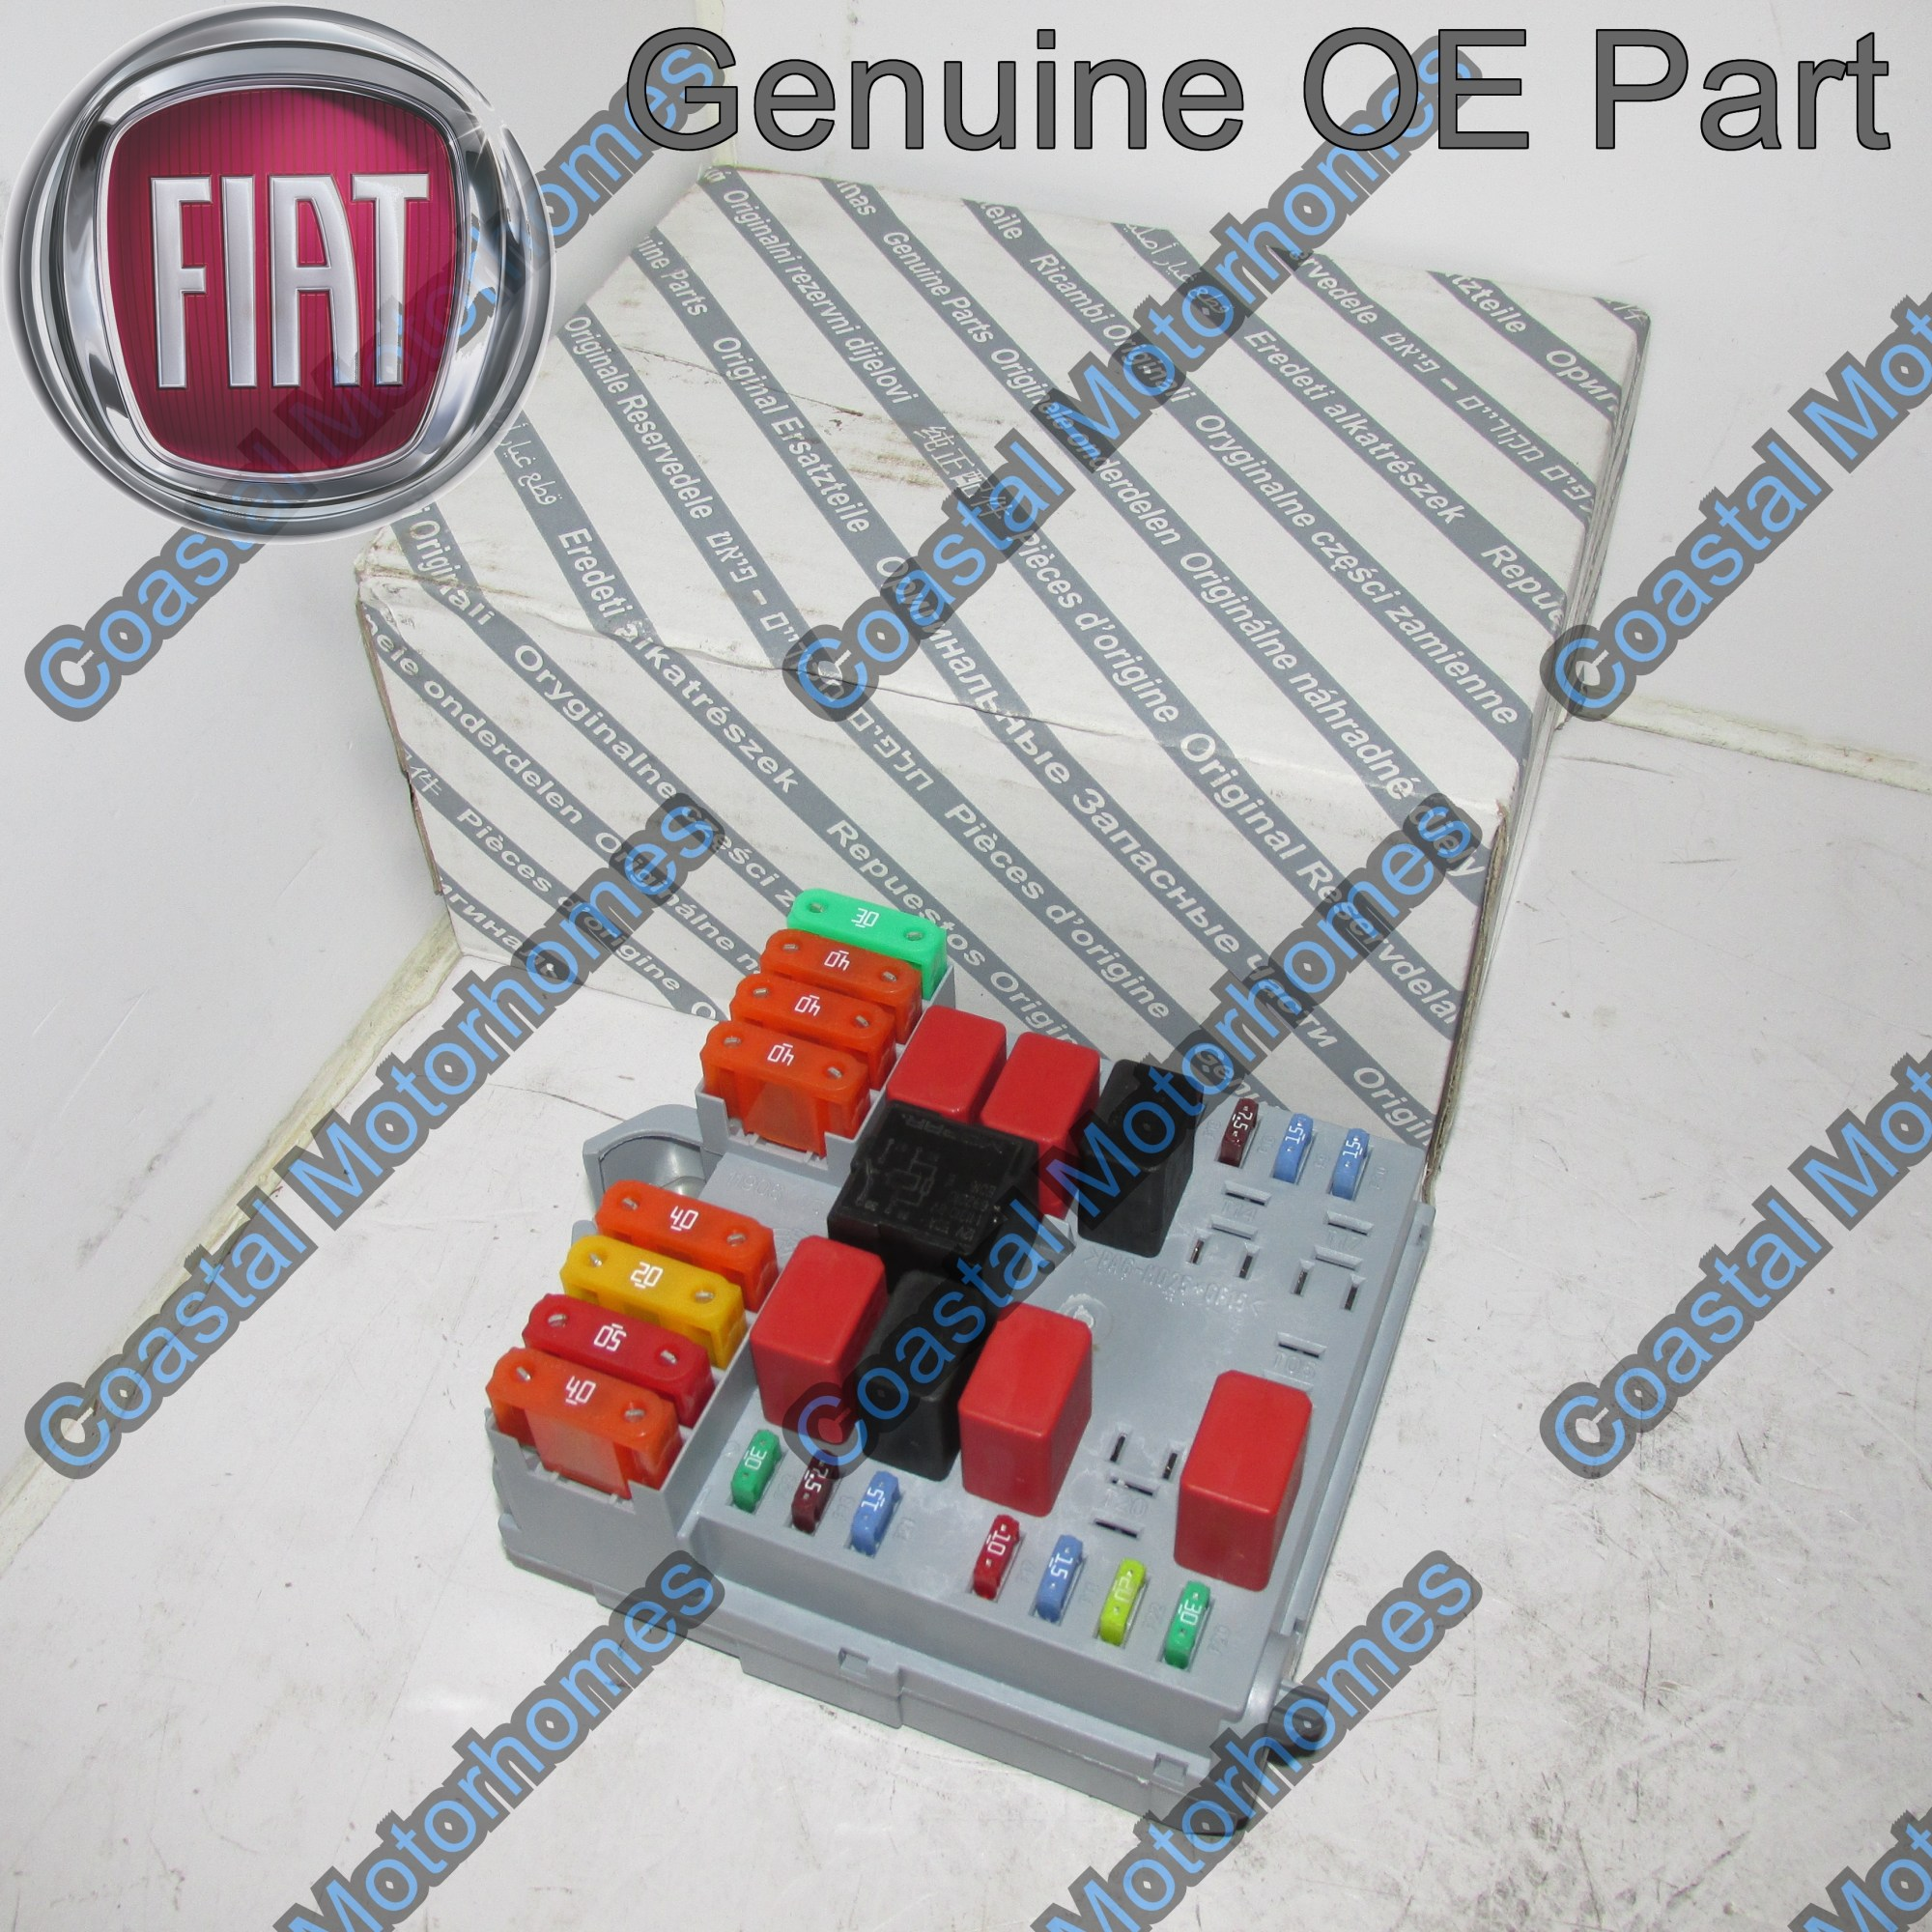 hight resolution of fiat ducato peugeot boxer citroen relay fuse box 2011 onwards oe